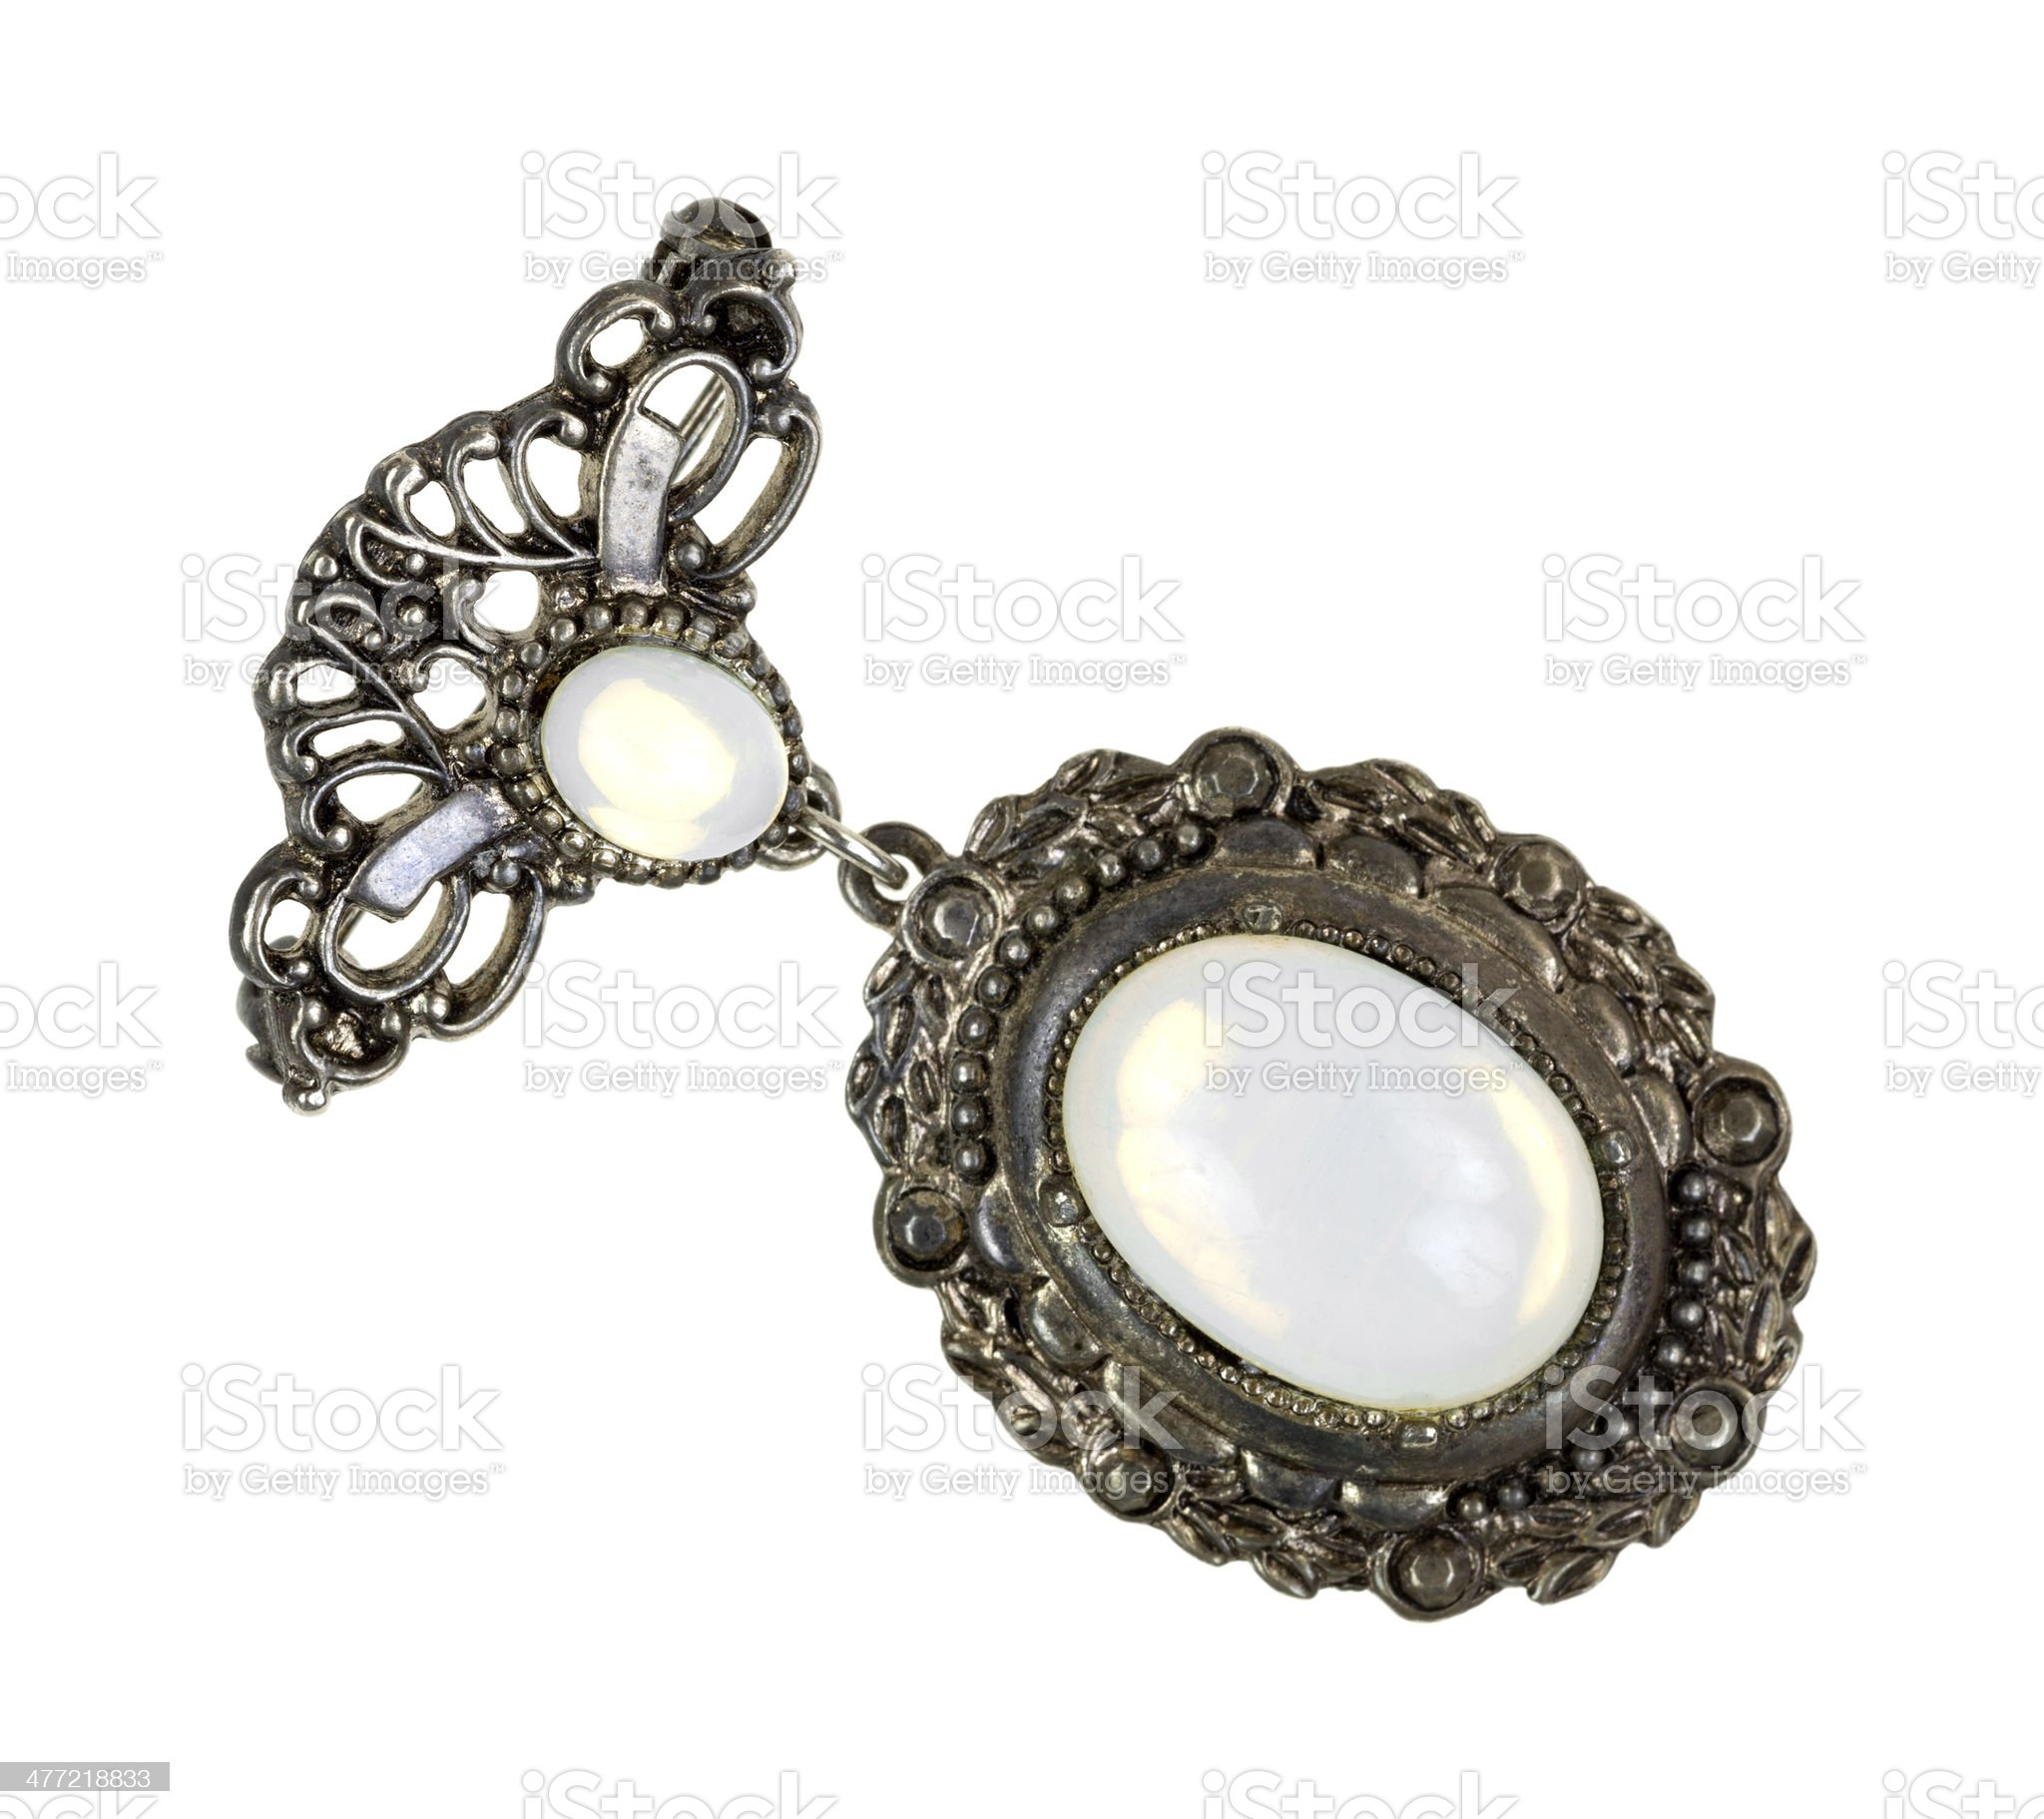 Old brooch with mother of pearl gem royalty-free stock photo